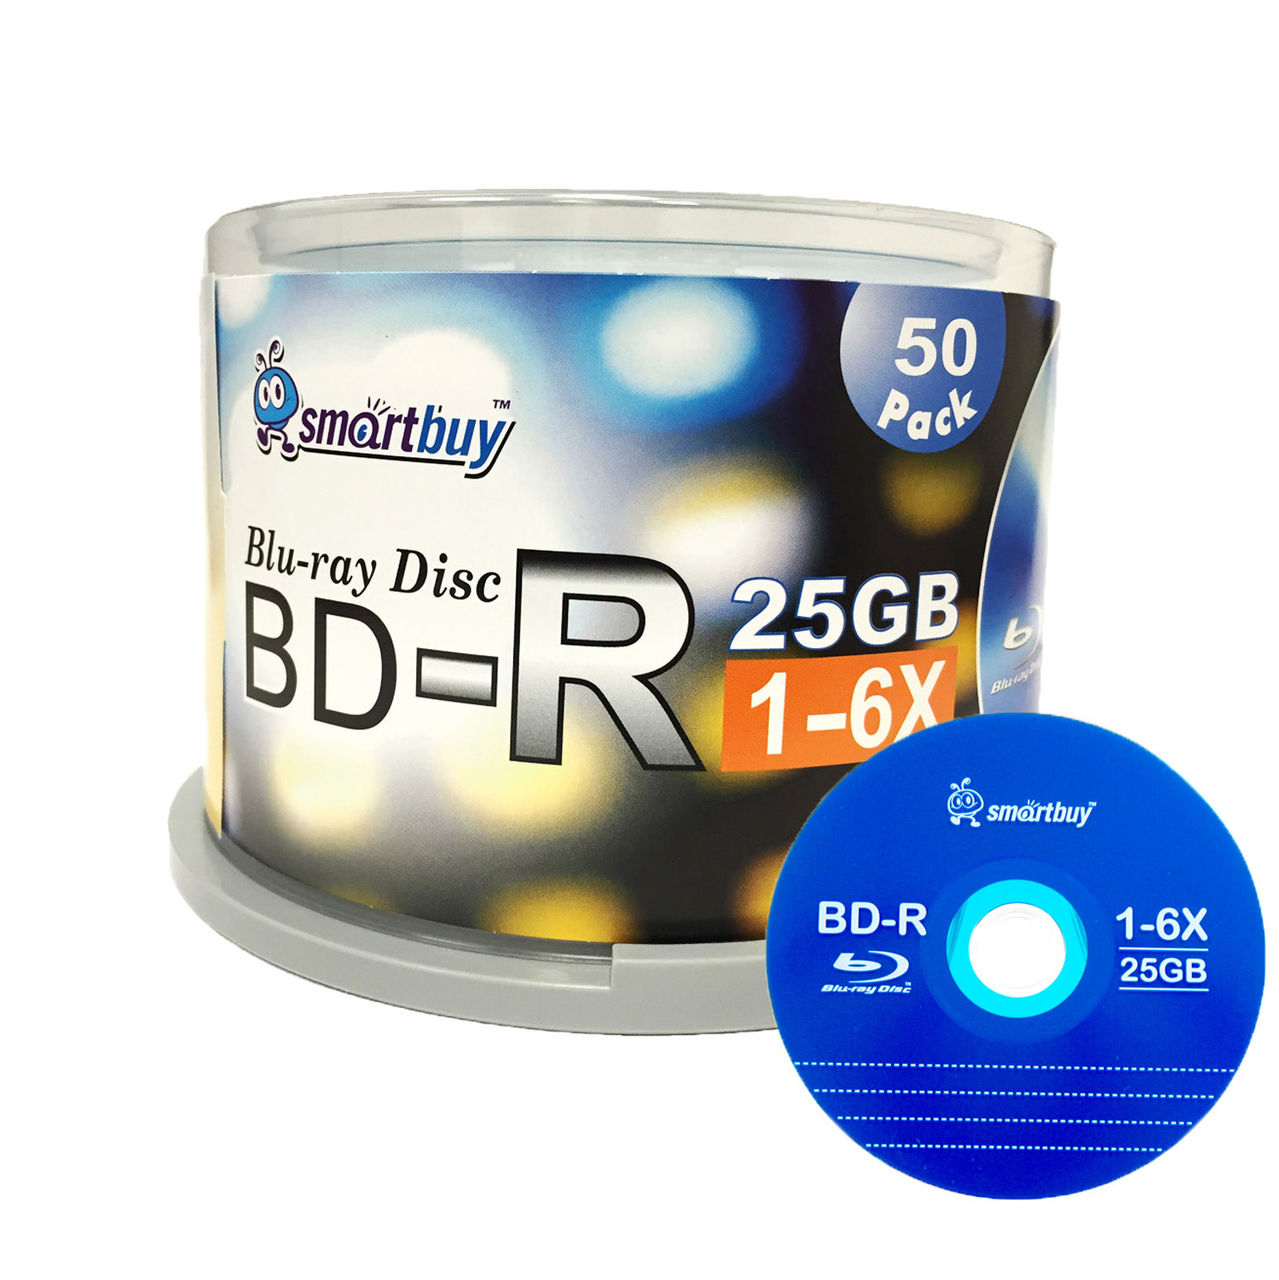 Smartbuy 50 Pack Bd-r 25gb 6x Blu-ray Single Layer Recordable Disc Logo Top Blank Data Video Media 50 Disc Spindle